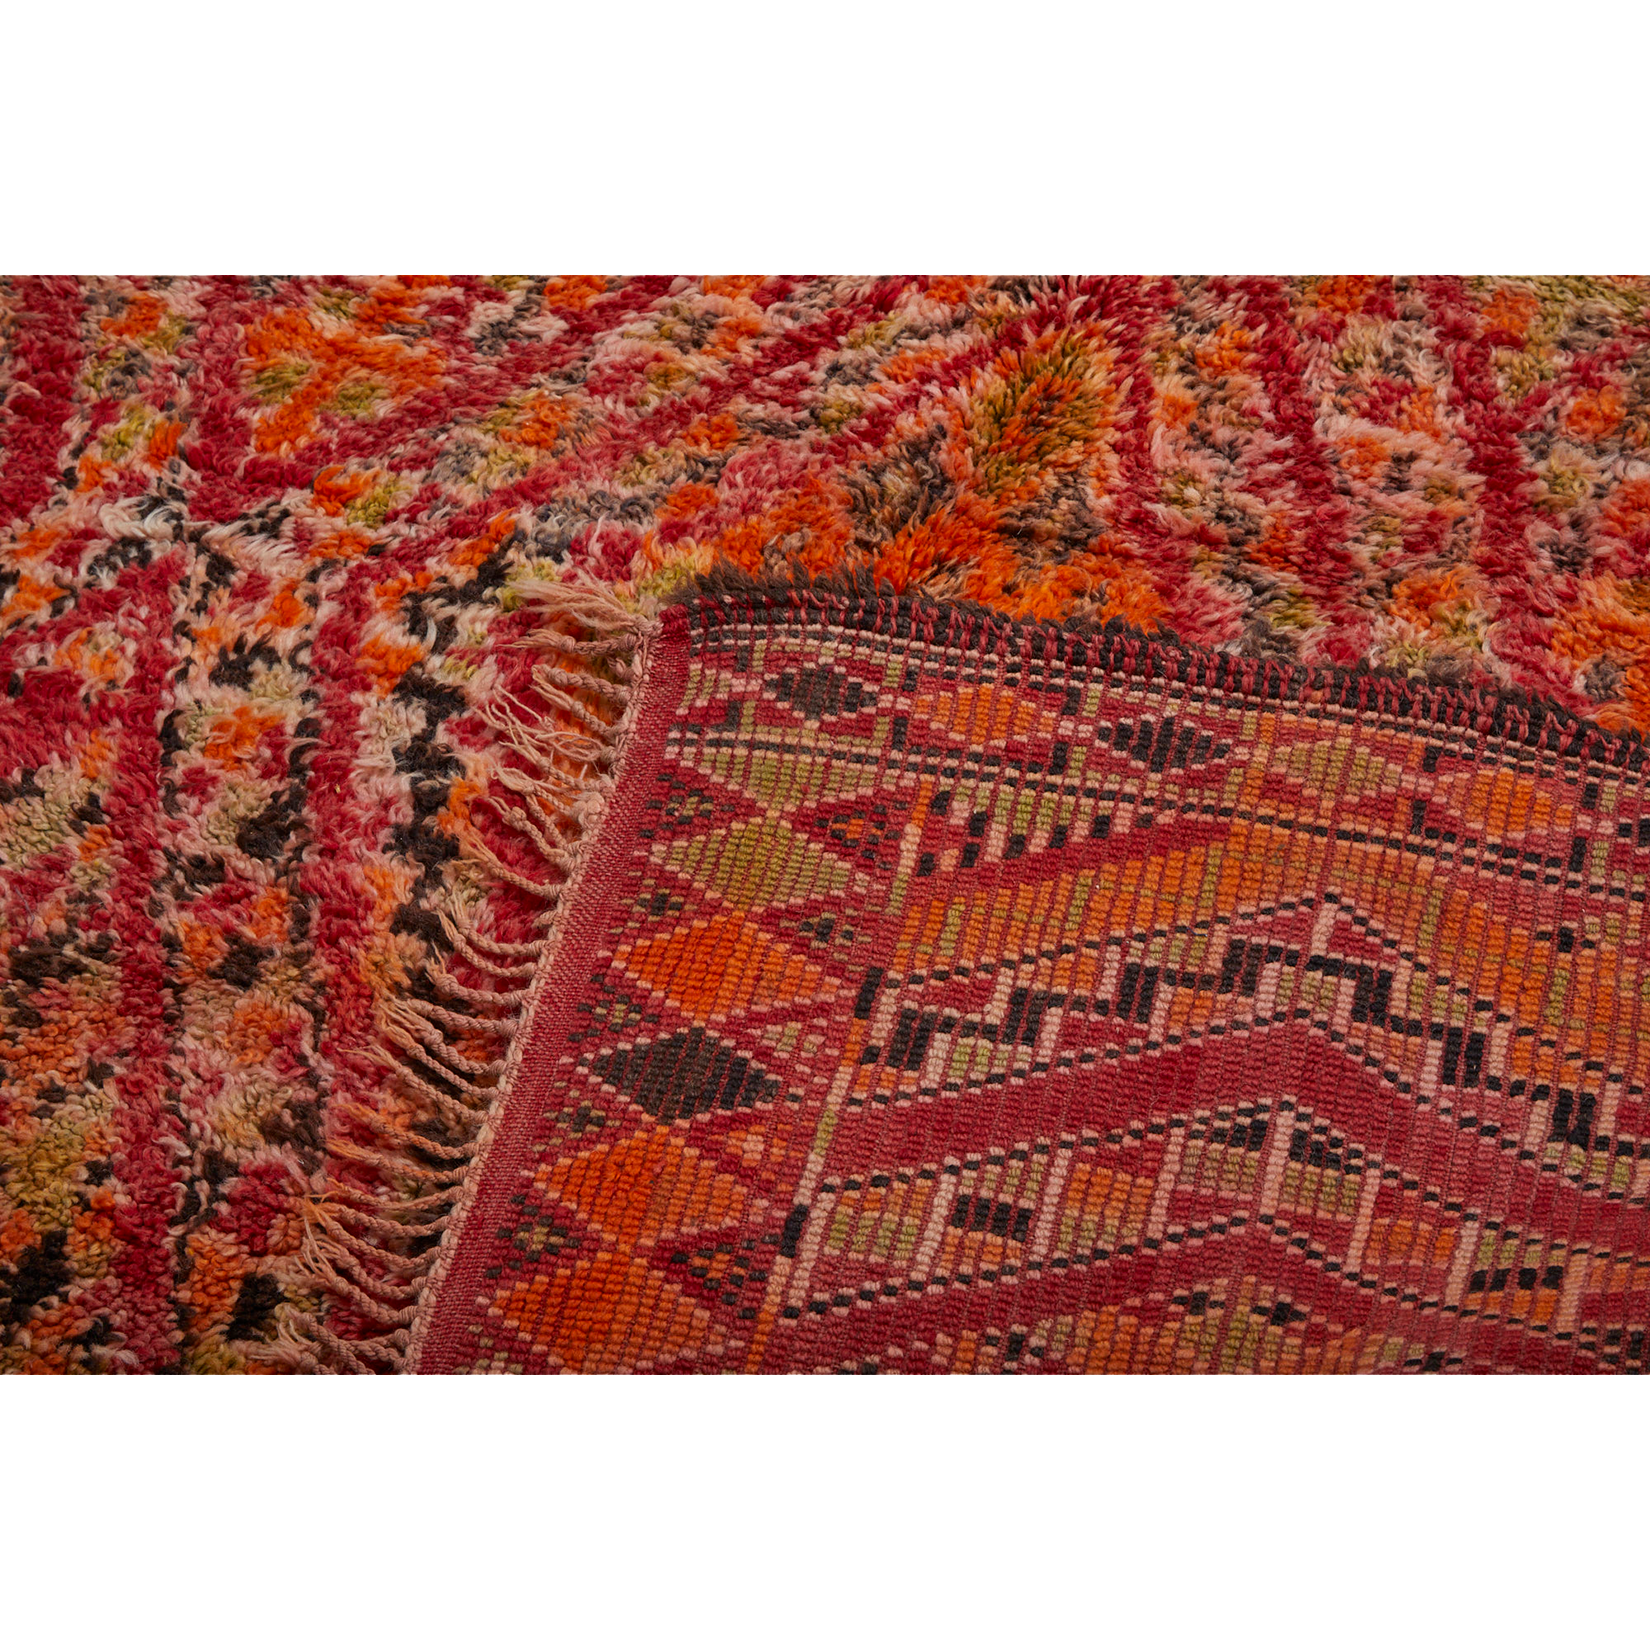 Authentic beni mguild moroccan berber rug in red - Kantara | Moroccan Rugs